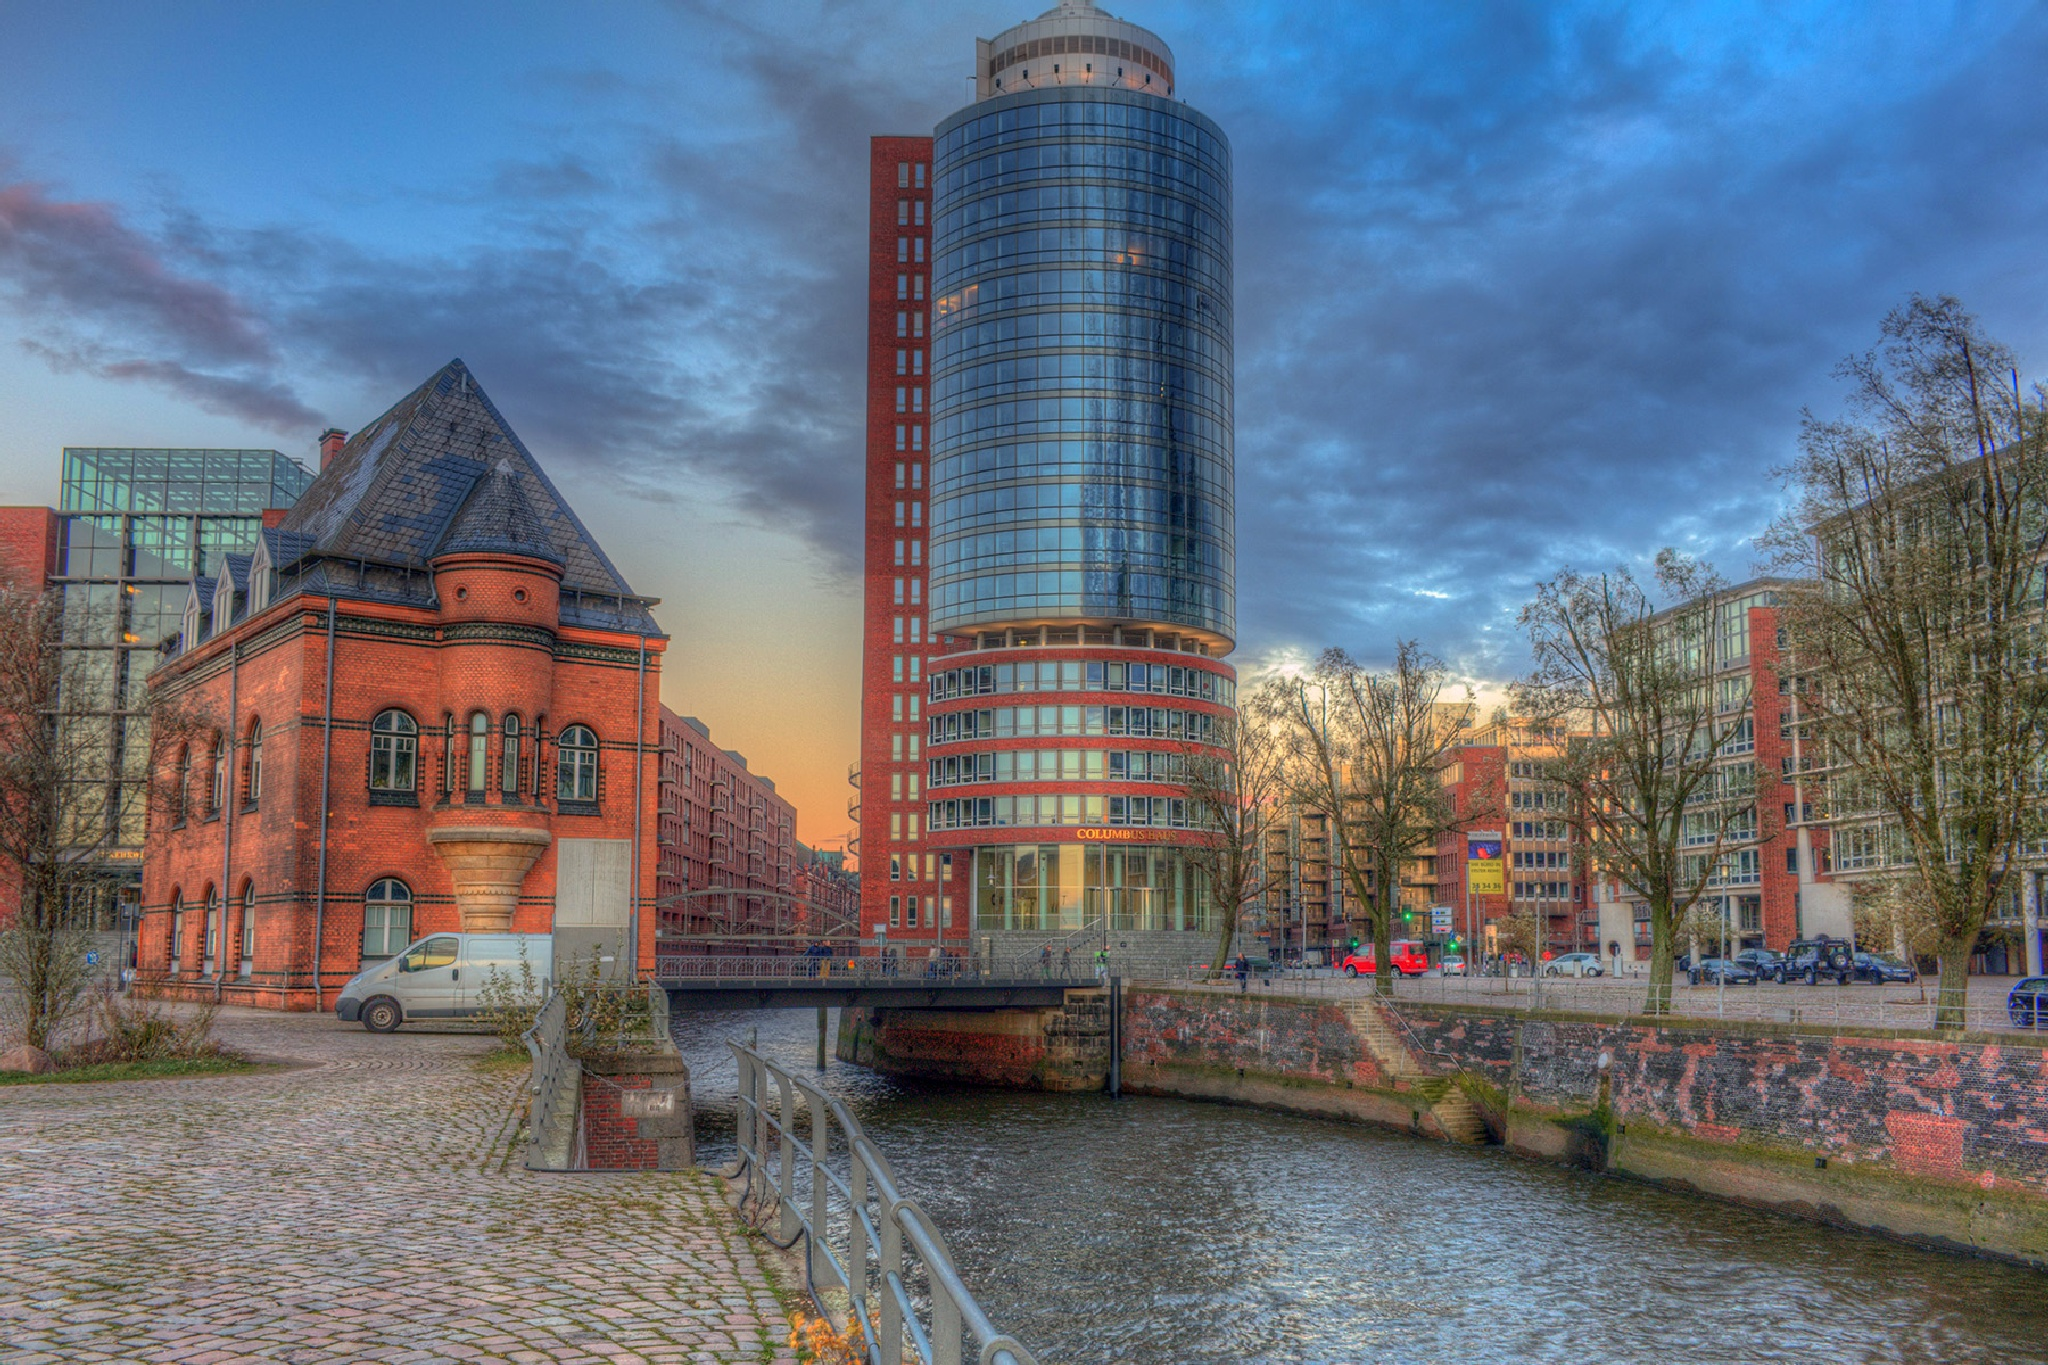 Old and new buildings in Hamburg by Maik Richter Photography